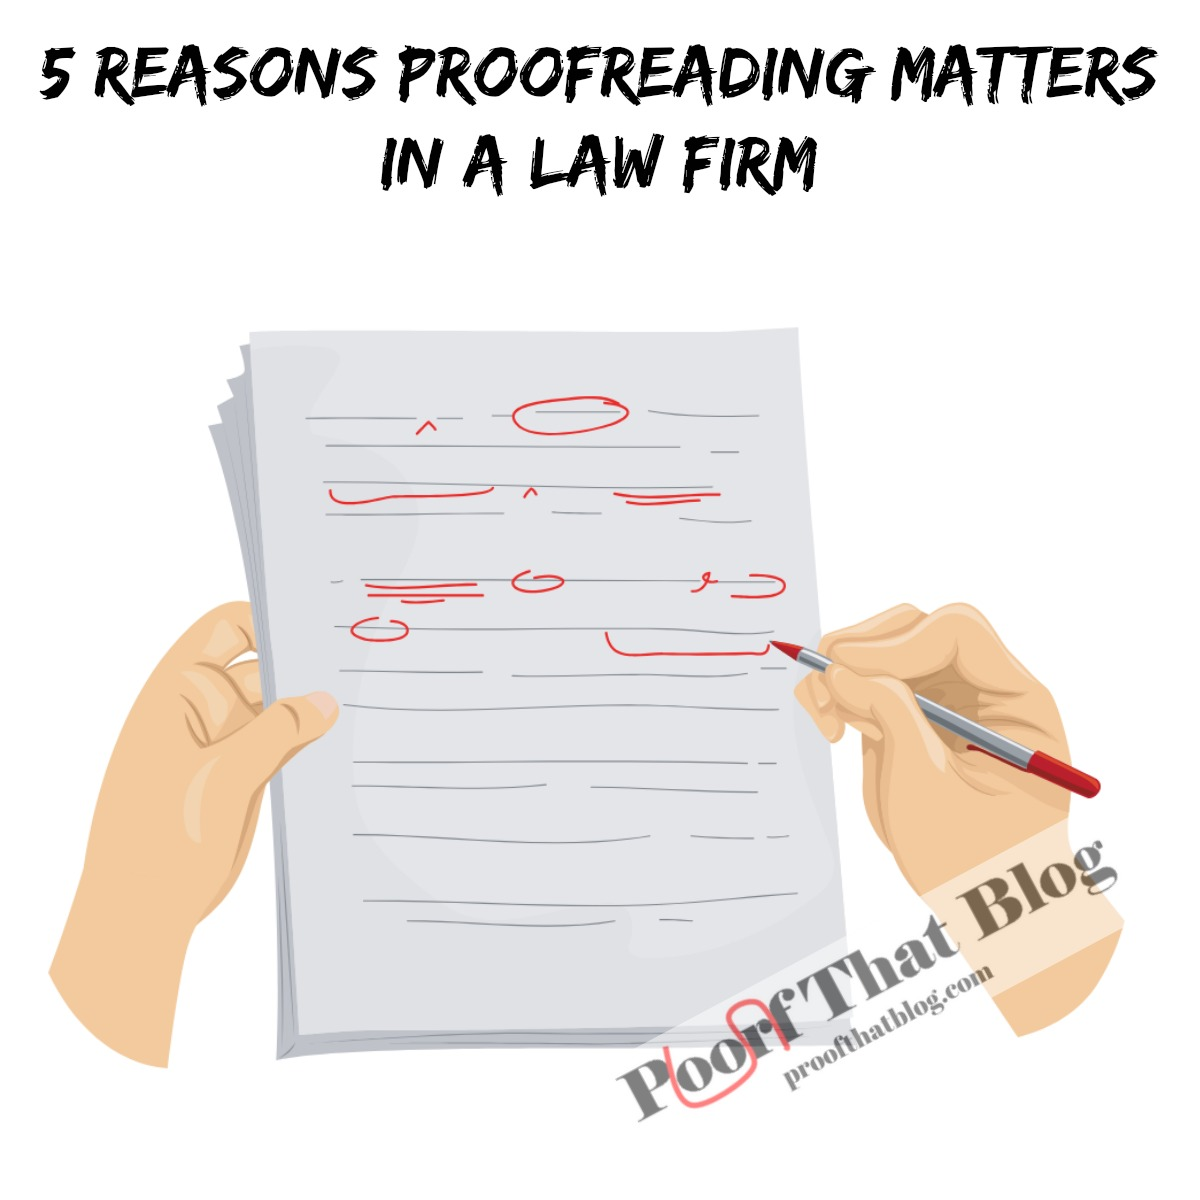 5 Reasons Proofeading Matters